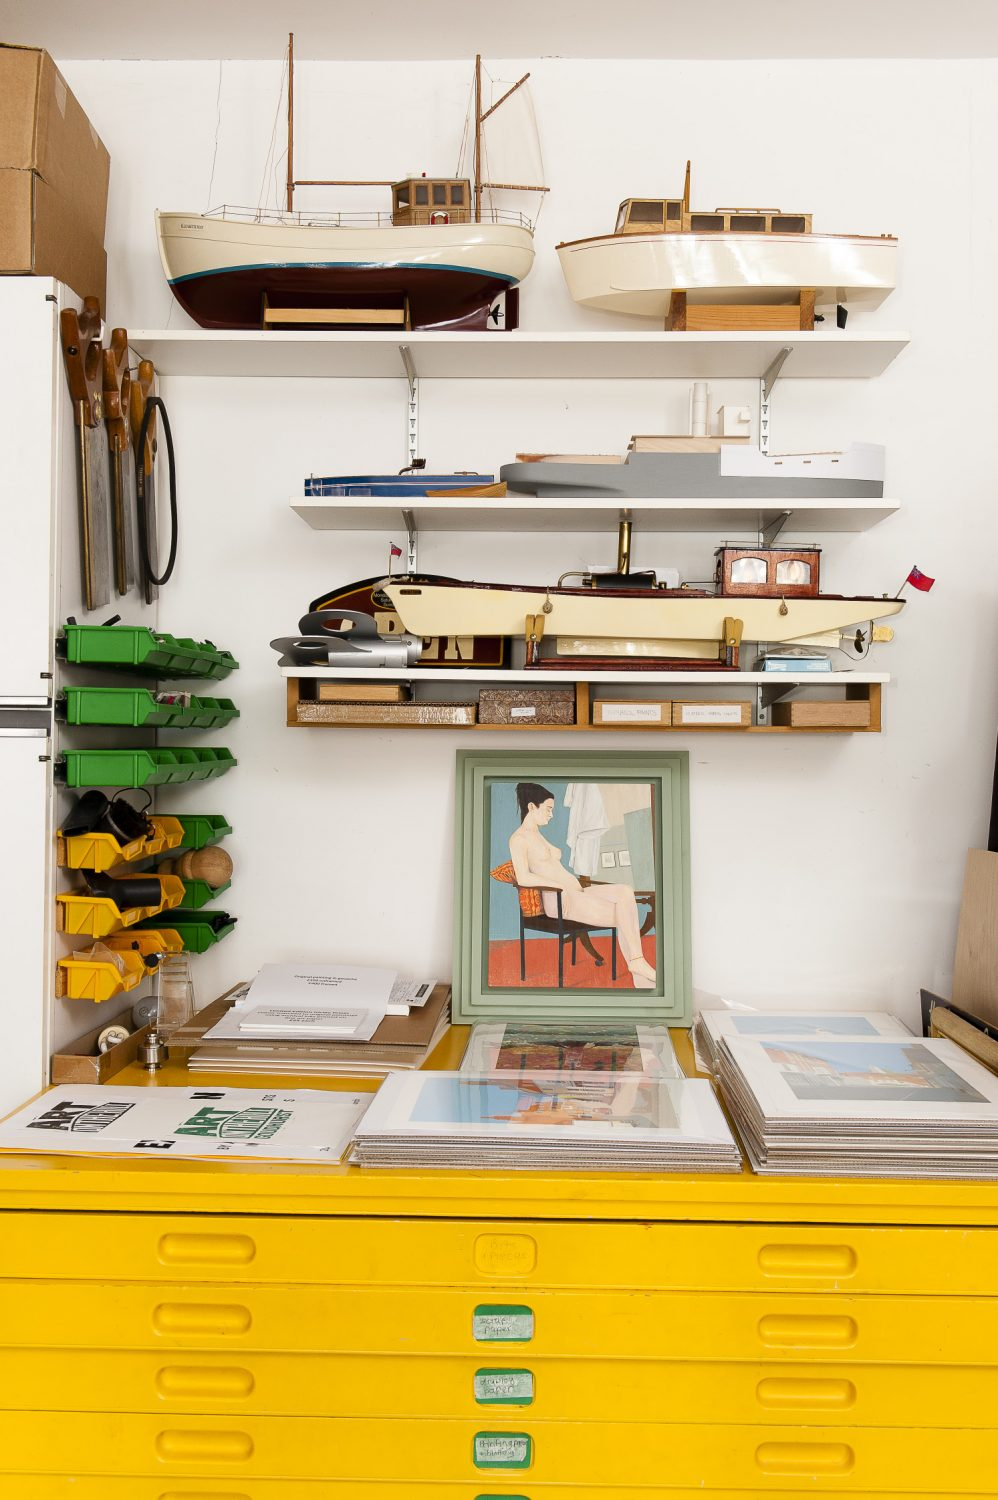 The studio is home to more of Dave's boats and a wonderful bright yellow plan chest